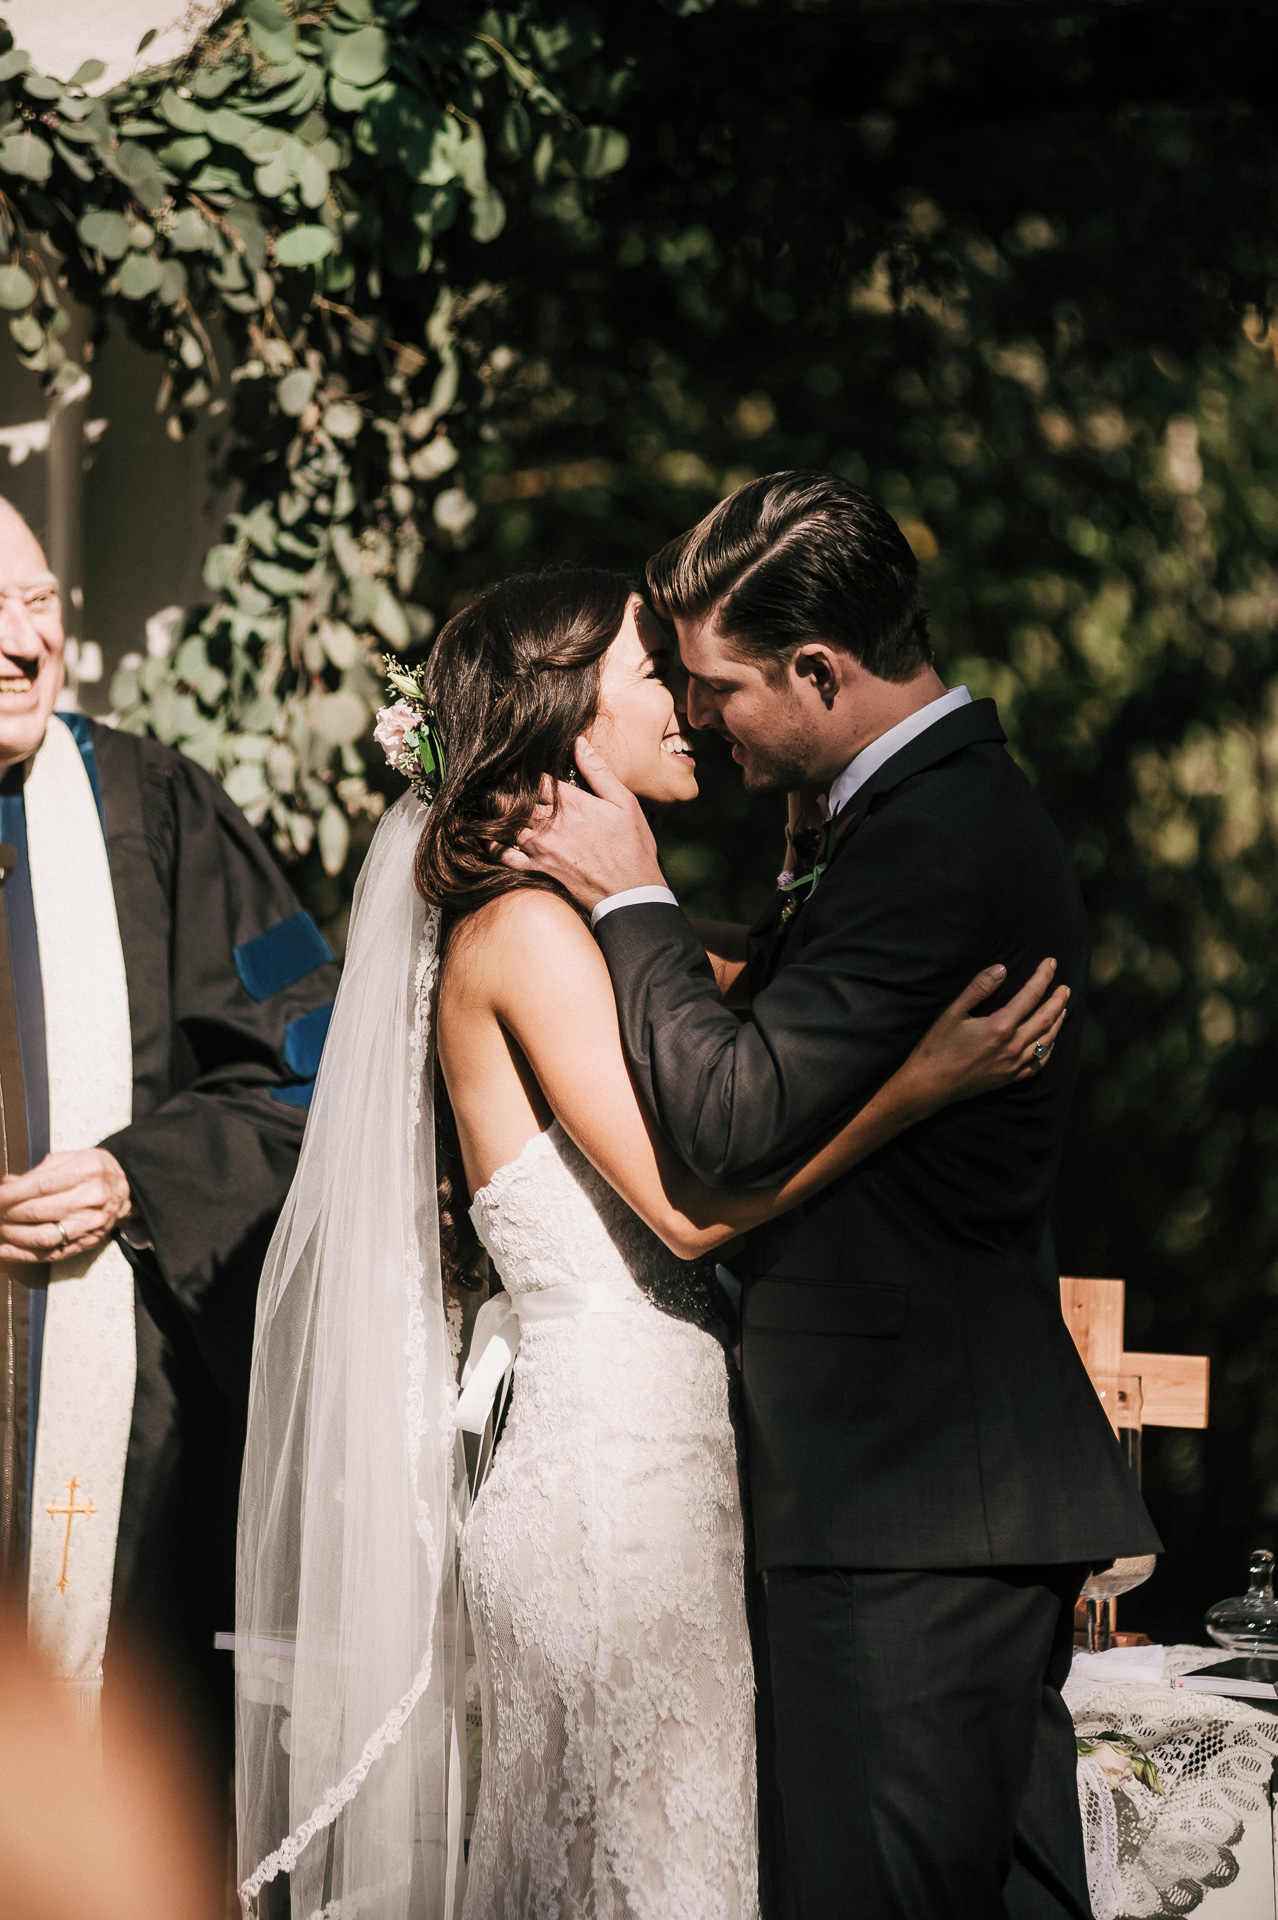 Wedding photographer captures first kiss during a lovely wedding at Quail Haven Farm.